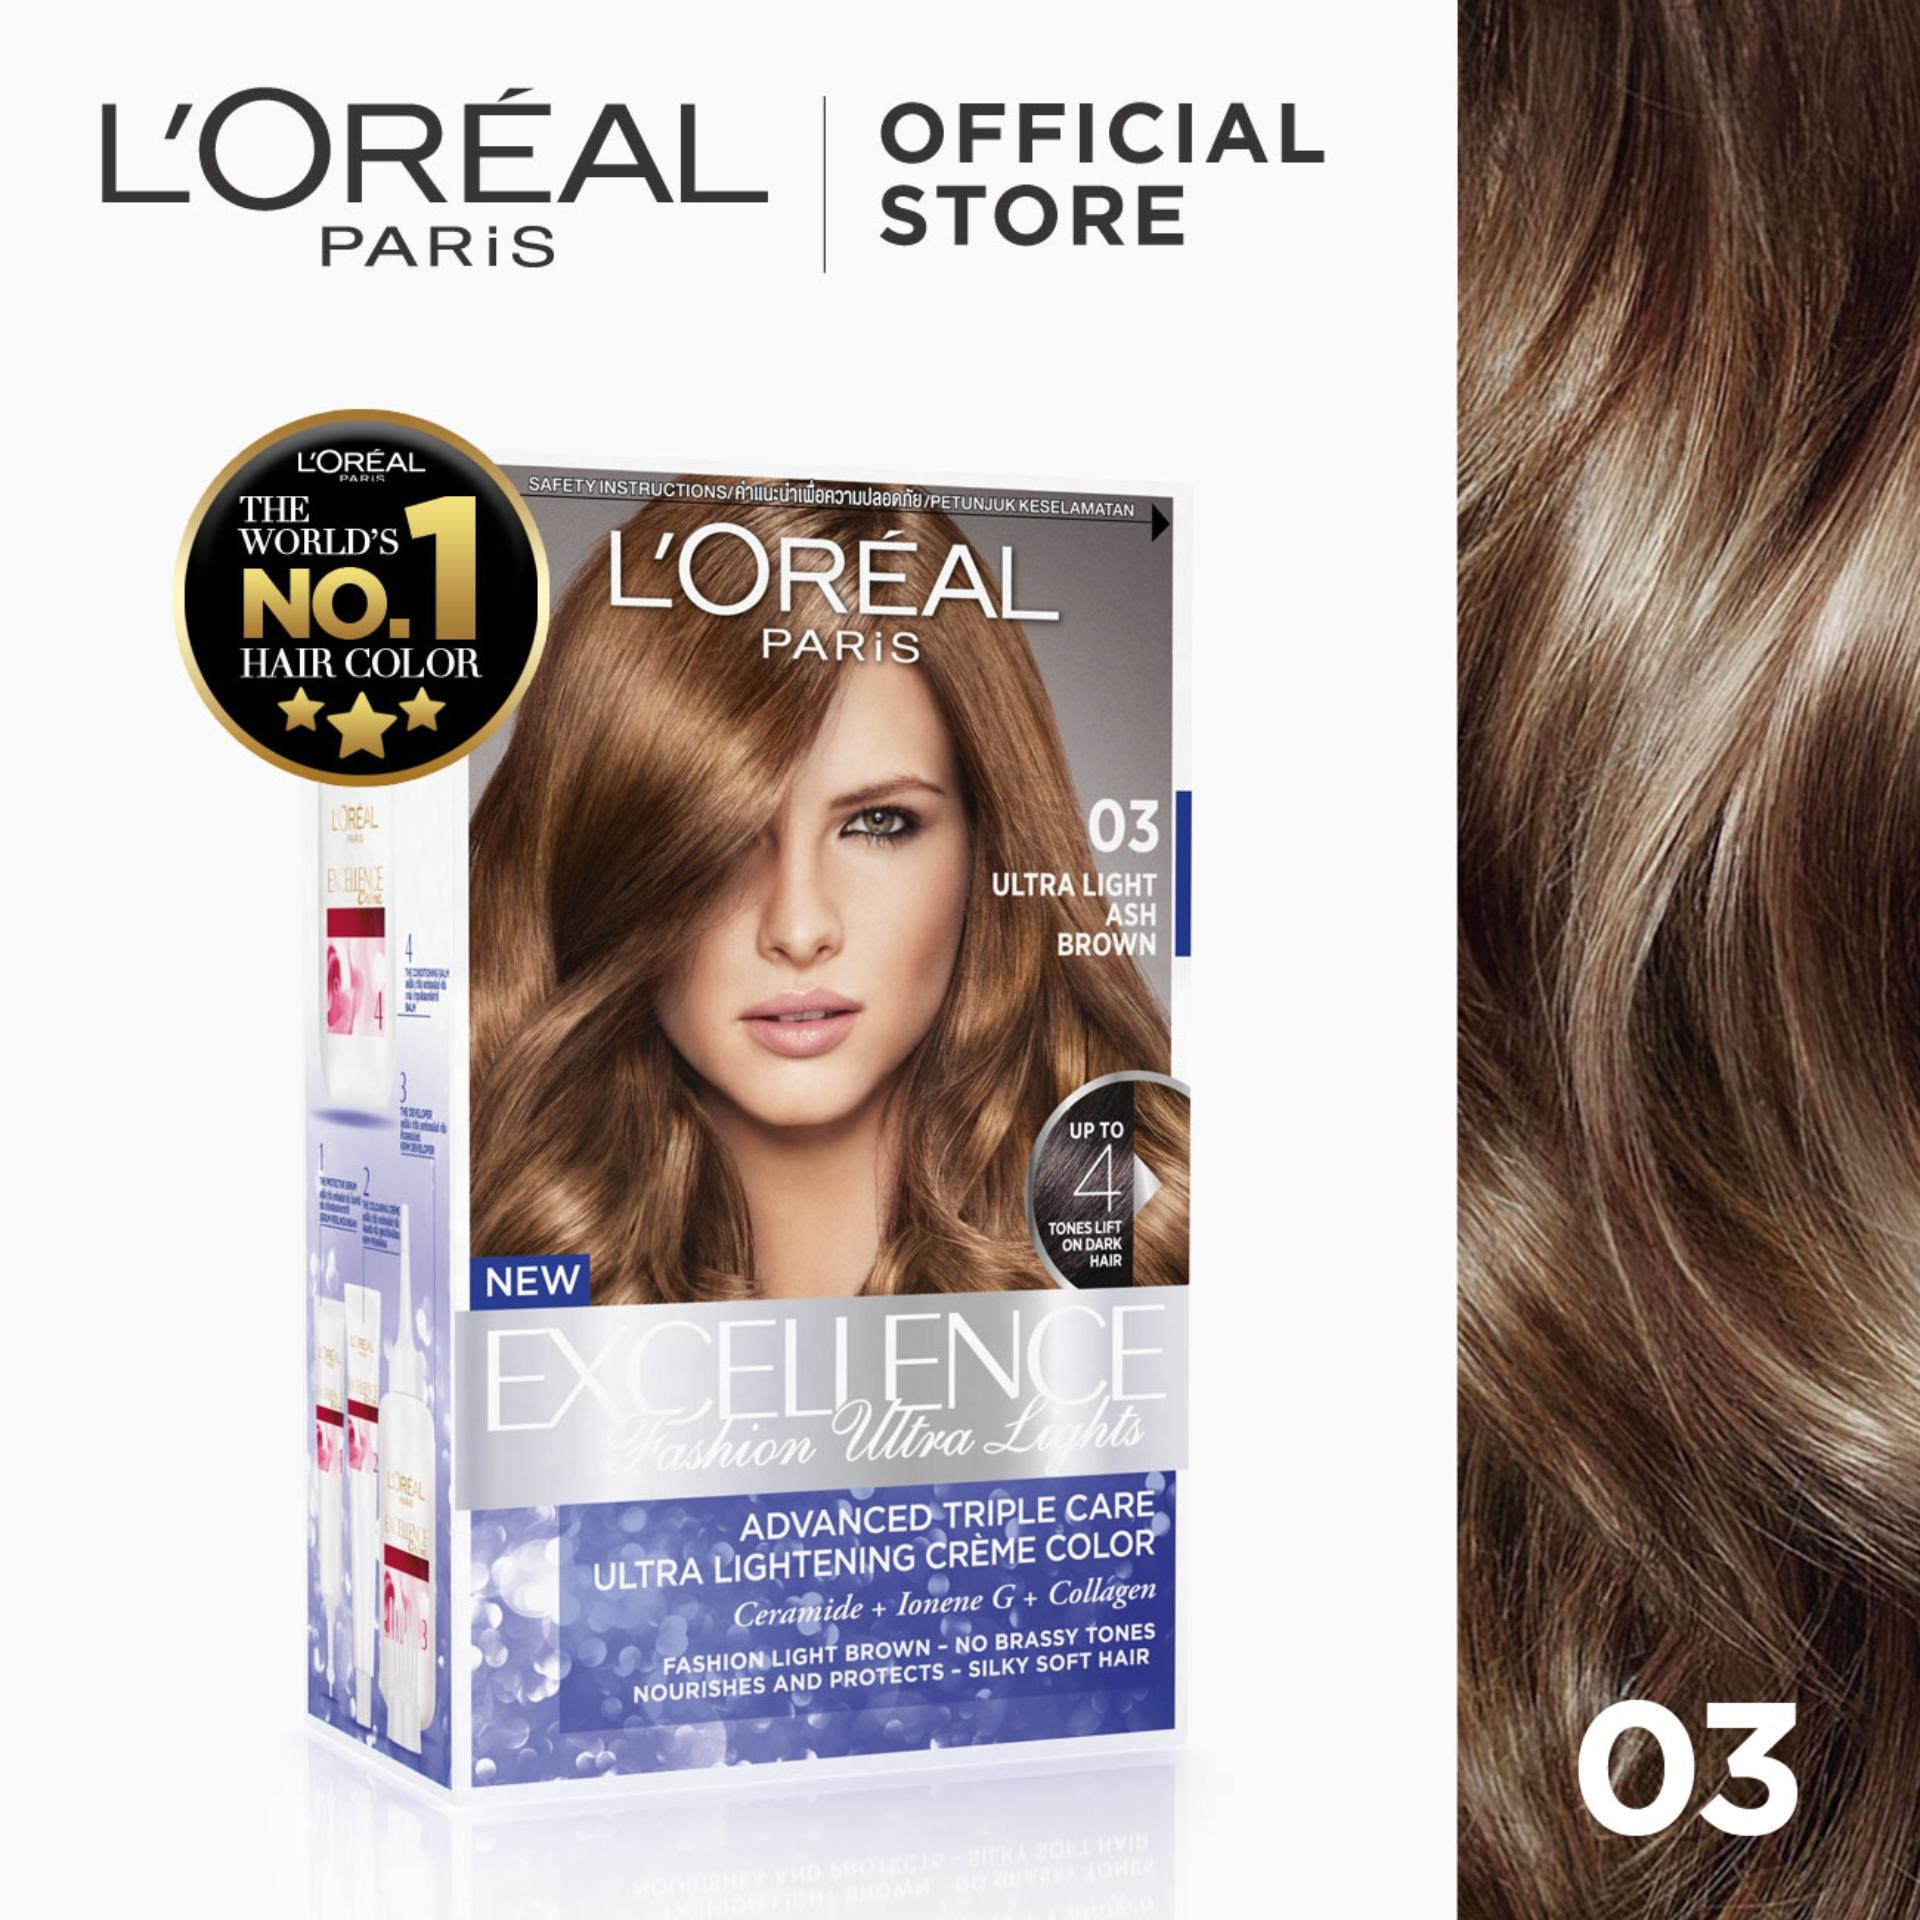 Excellence Fashion Ultra Lights Hair Color 03 Ash Brown Worlds